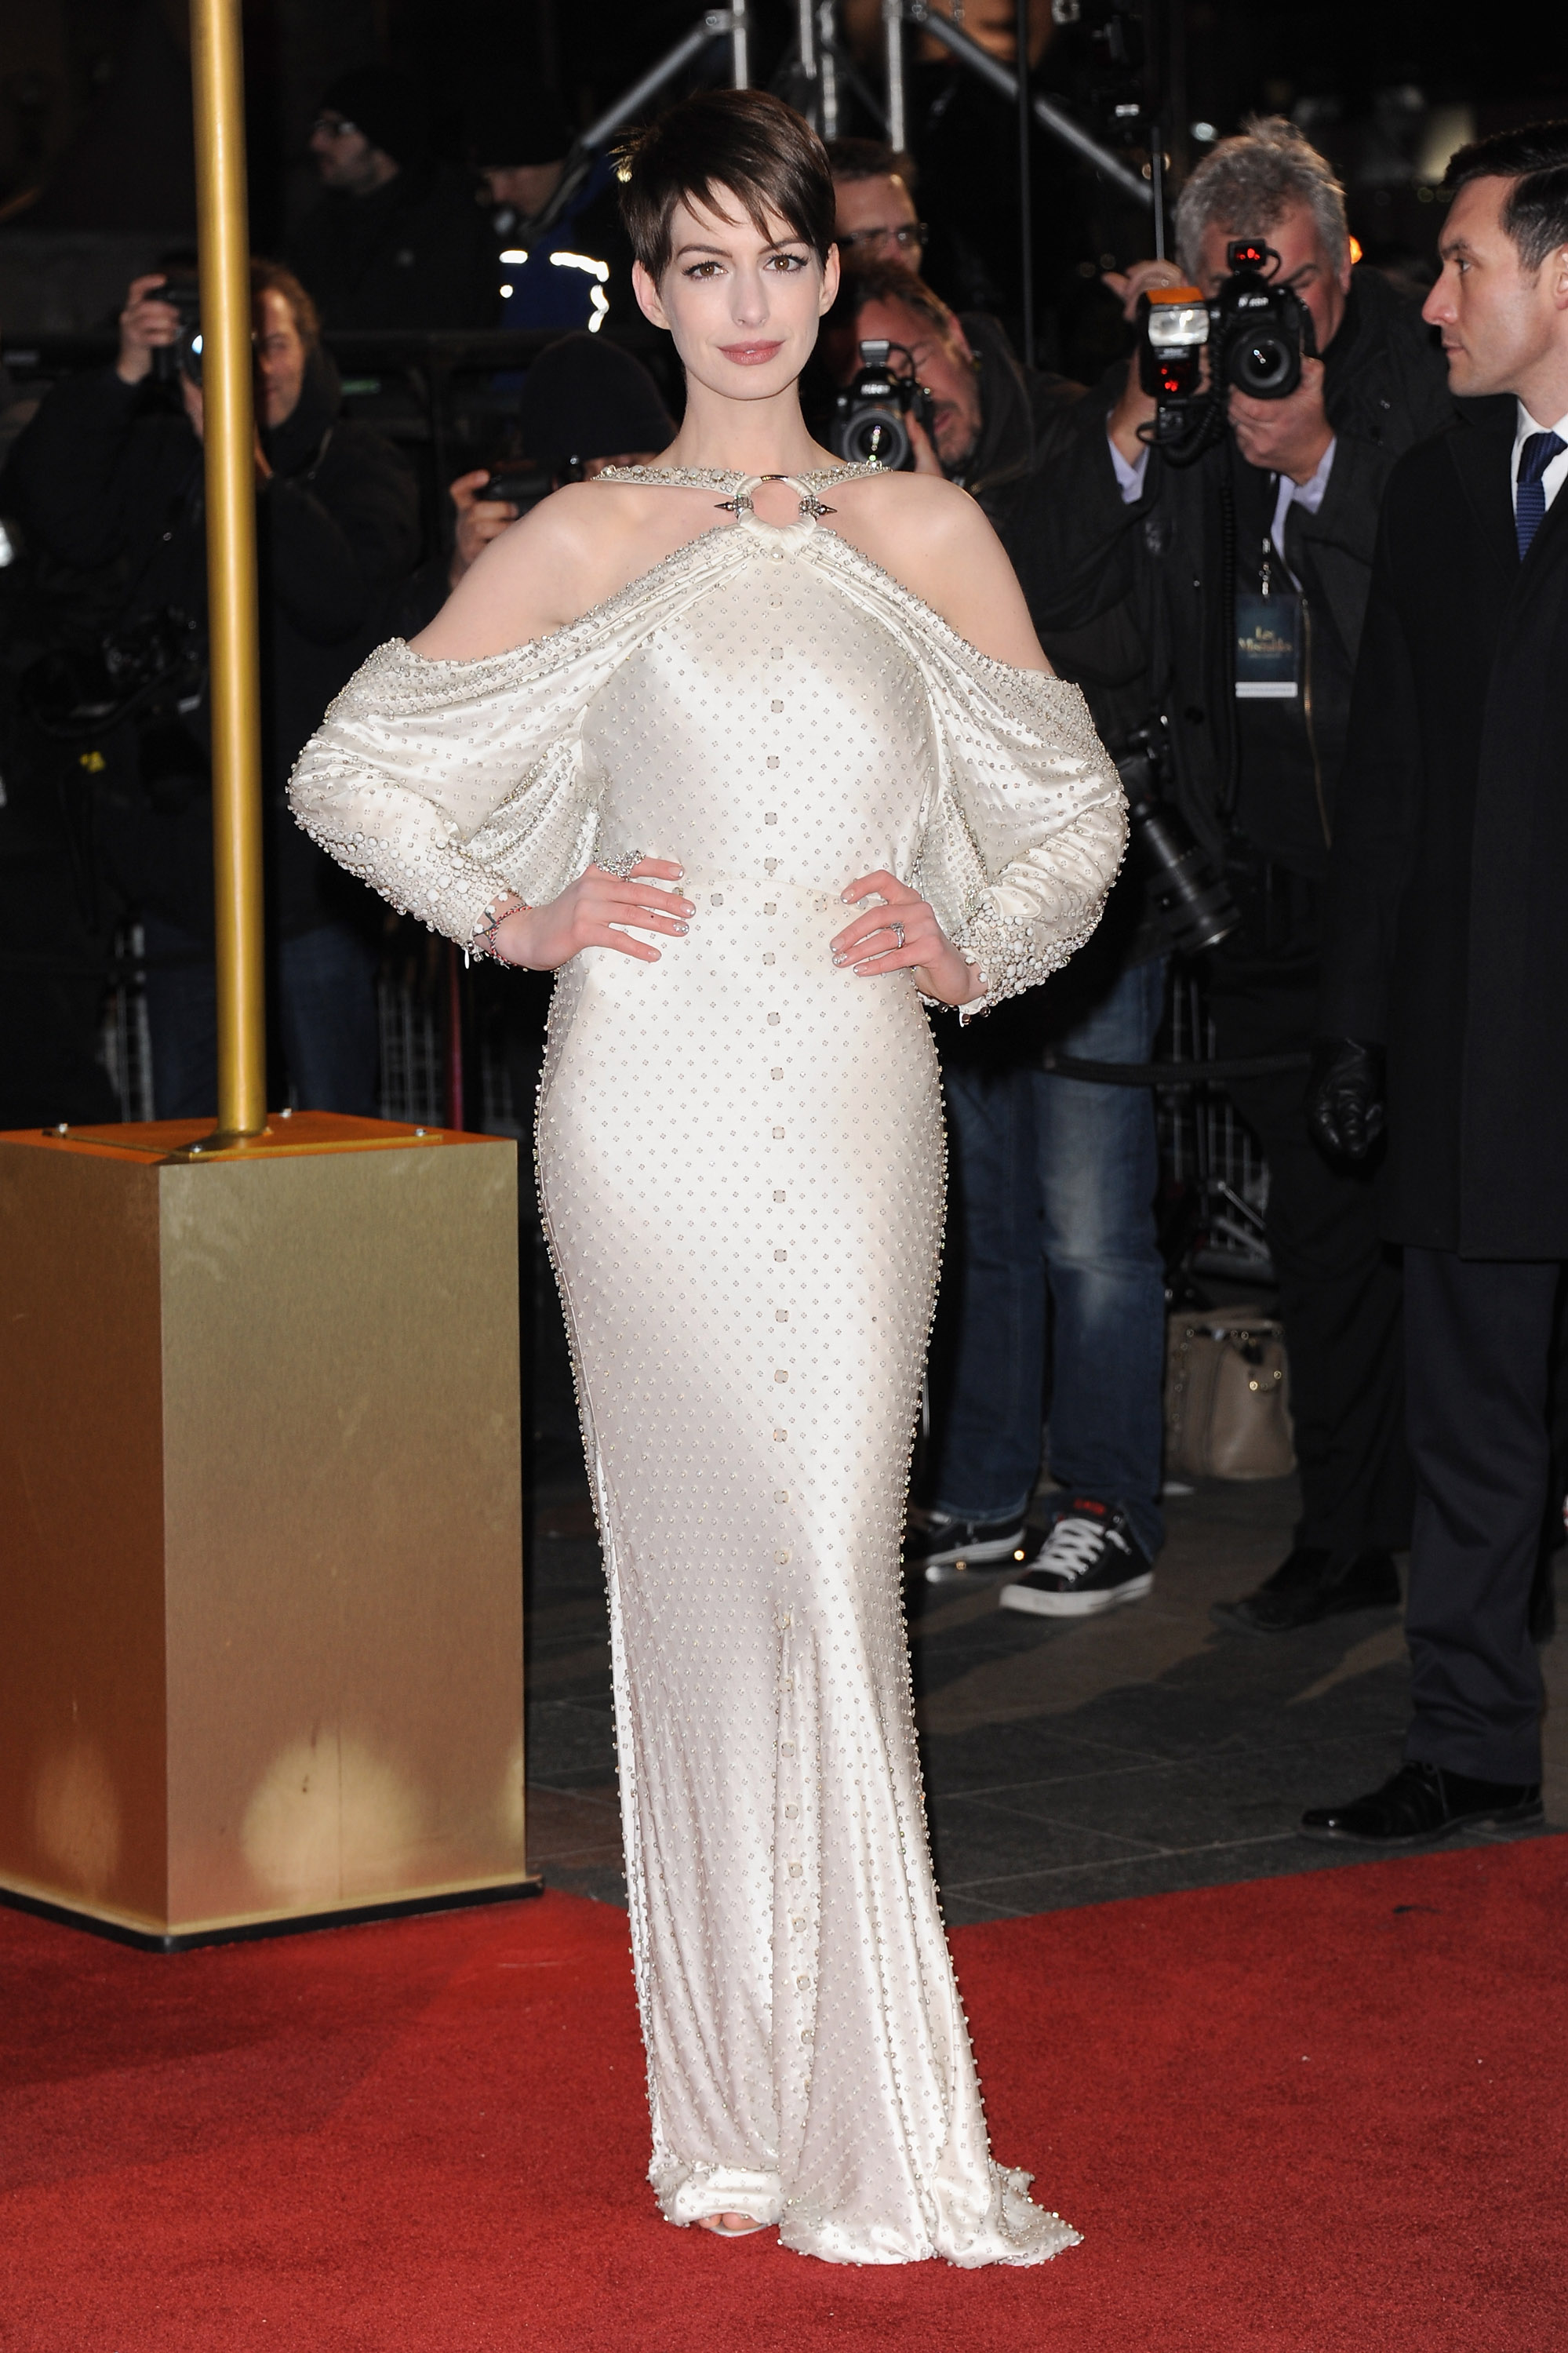 Anne Hathaway posed on the red carpet in London.